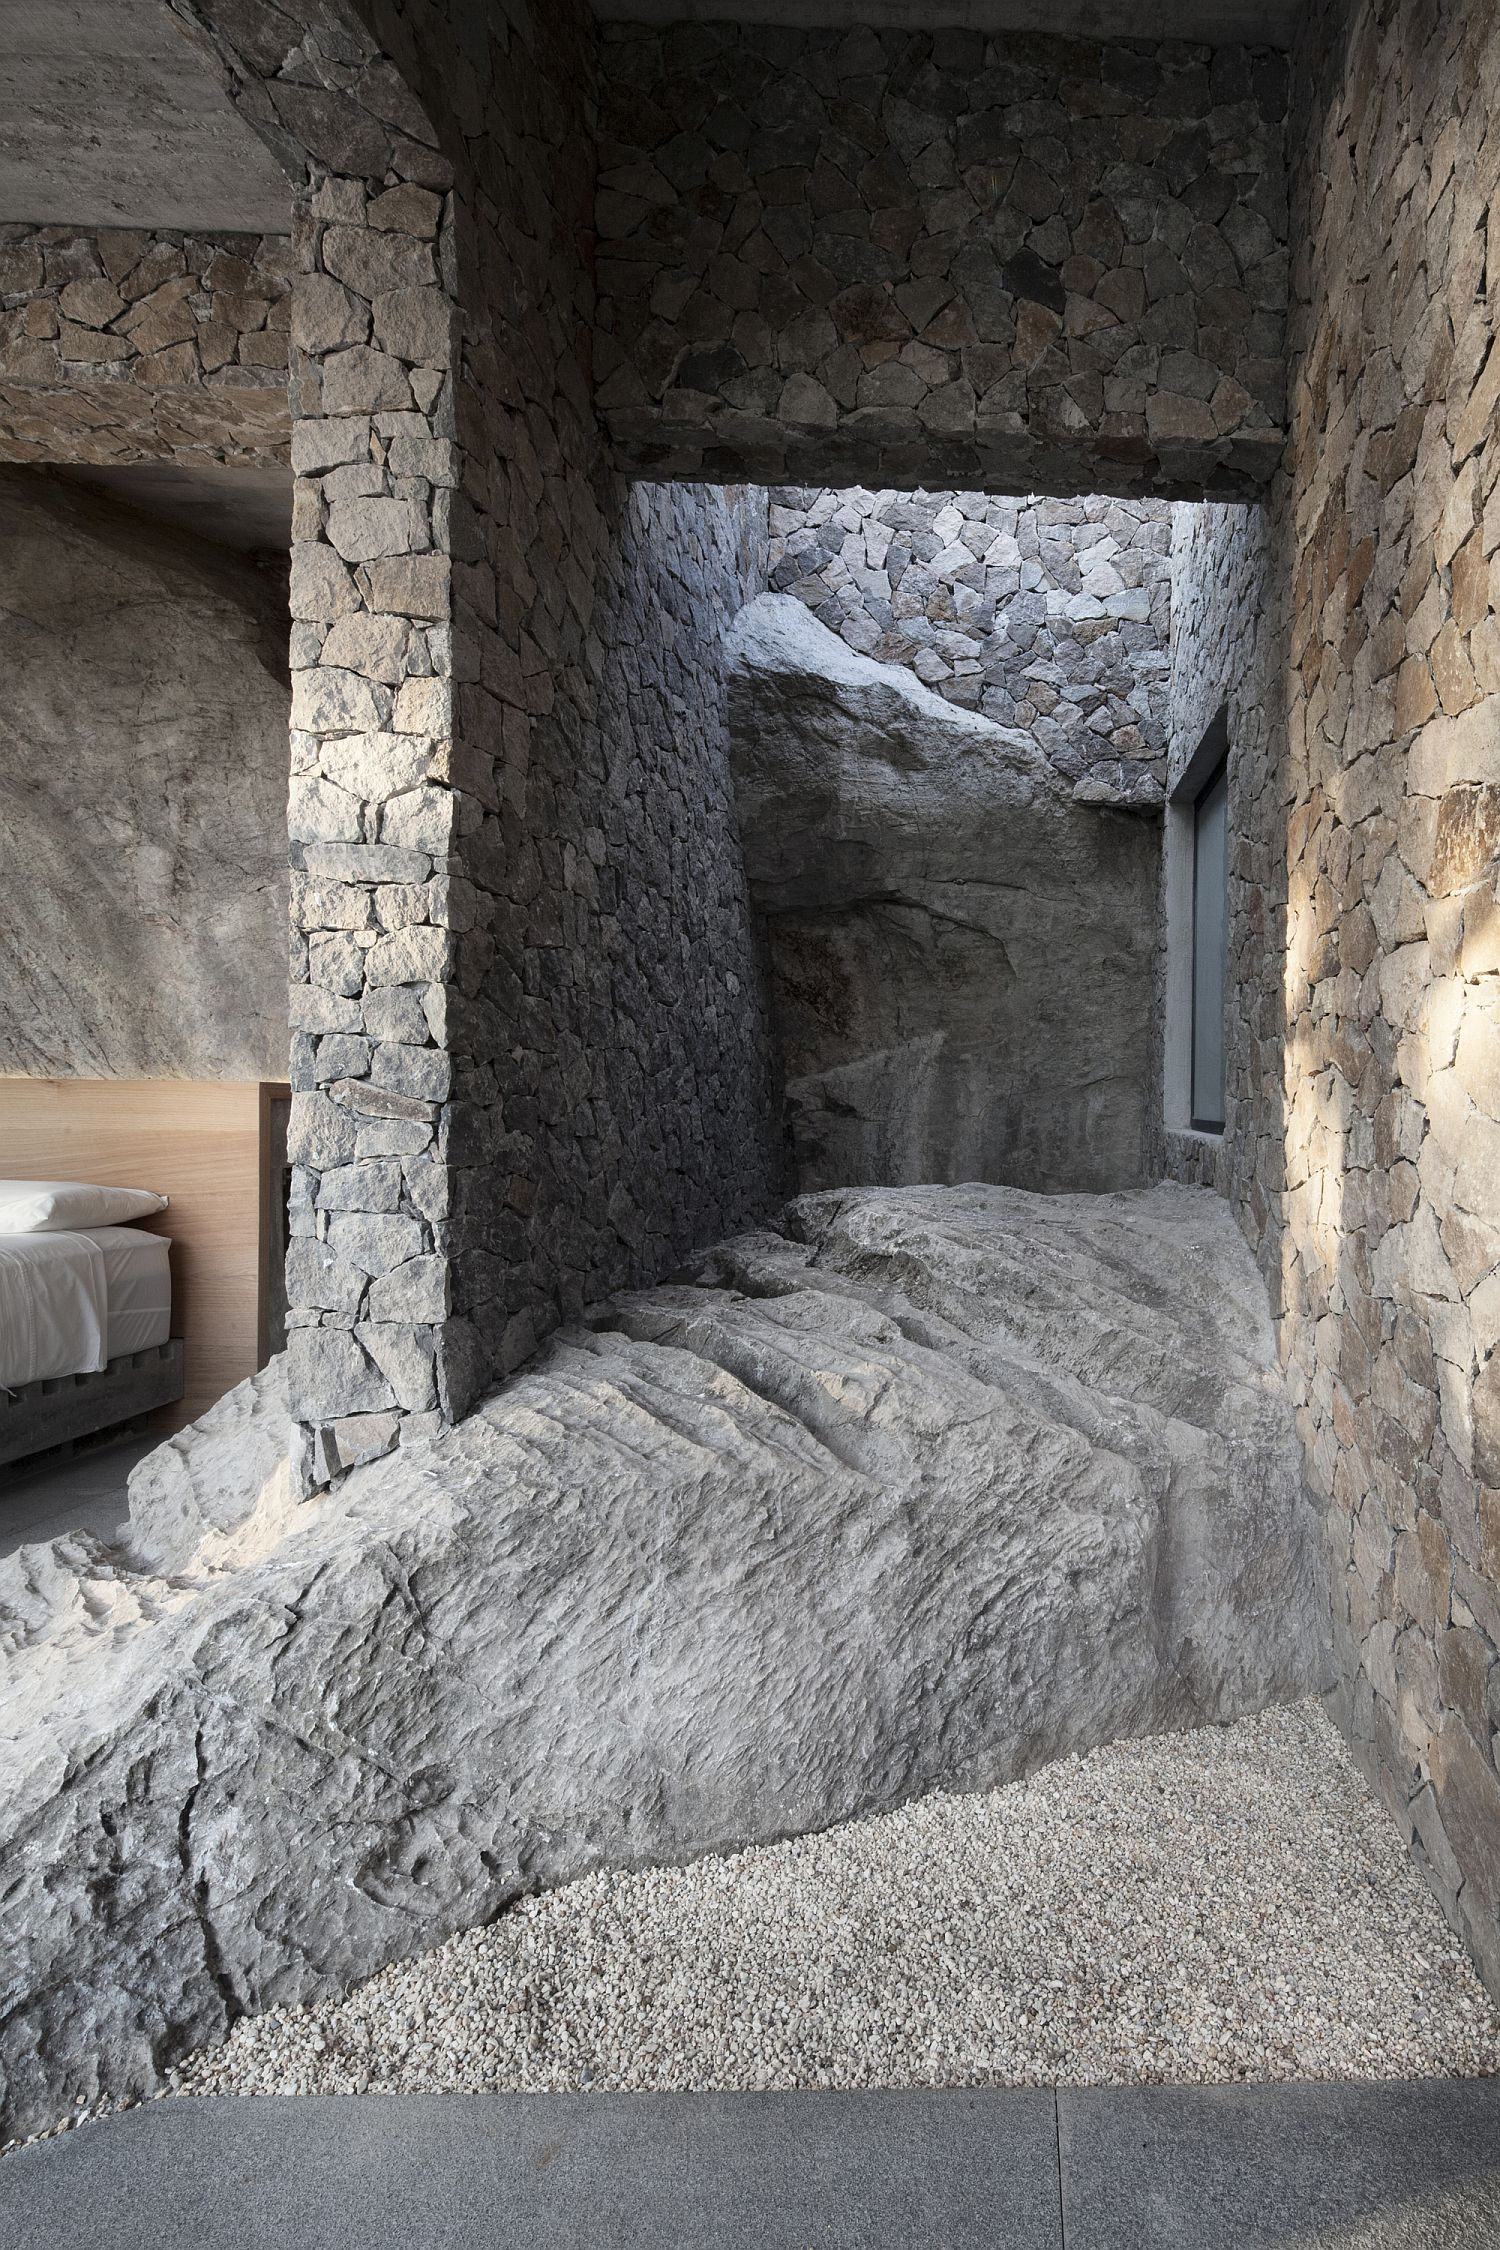 Stone walls coupled with large natural rock give the interior a unique appeal